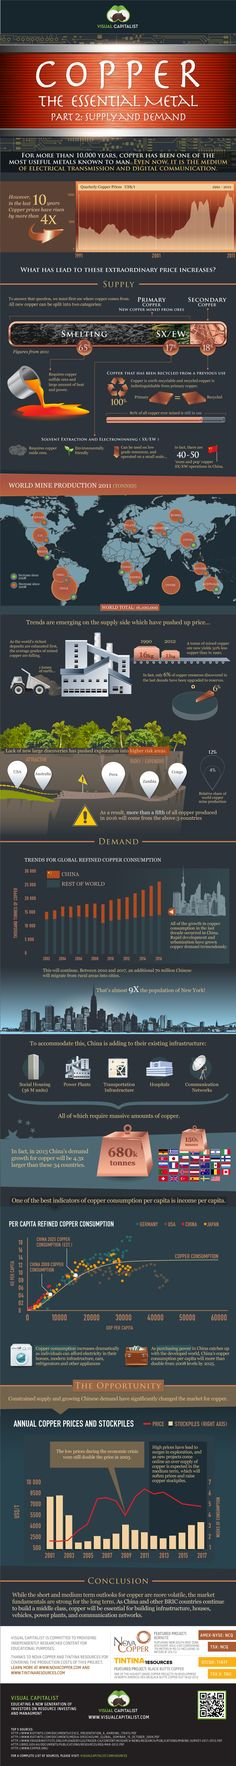 Infographic: Copper the essential element Part 2: Supply & demand